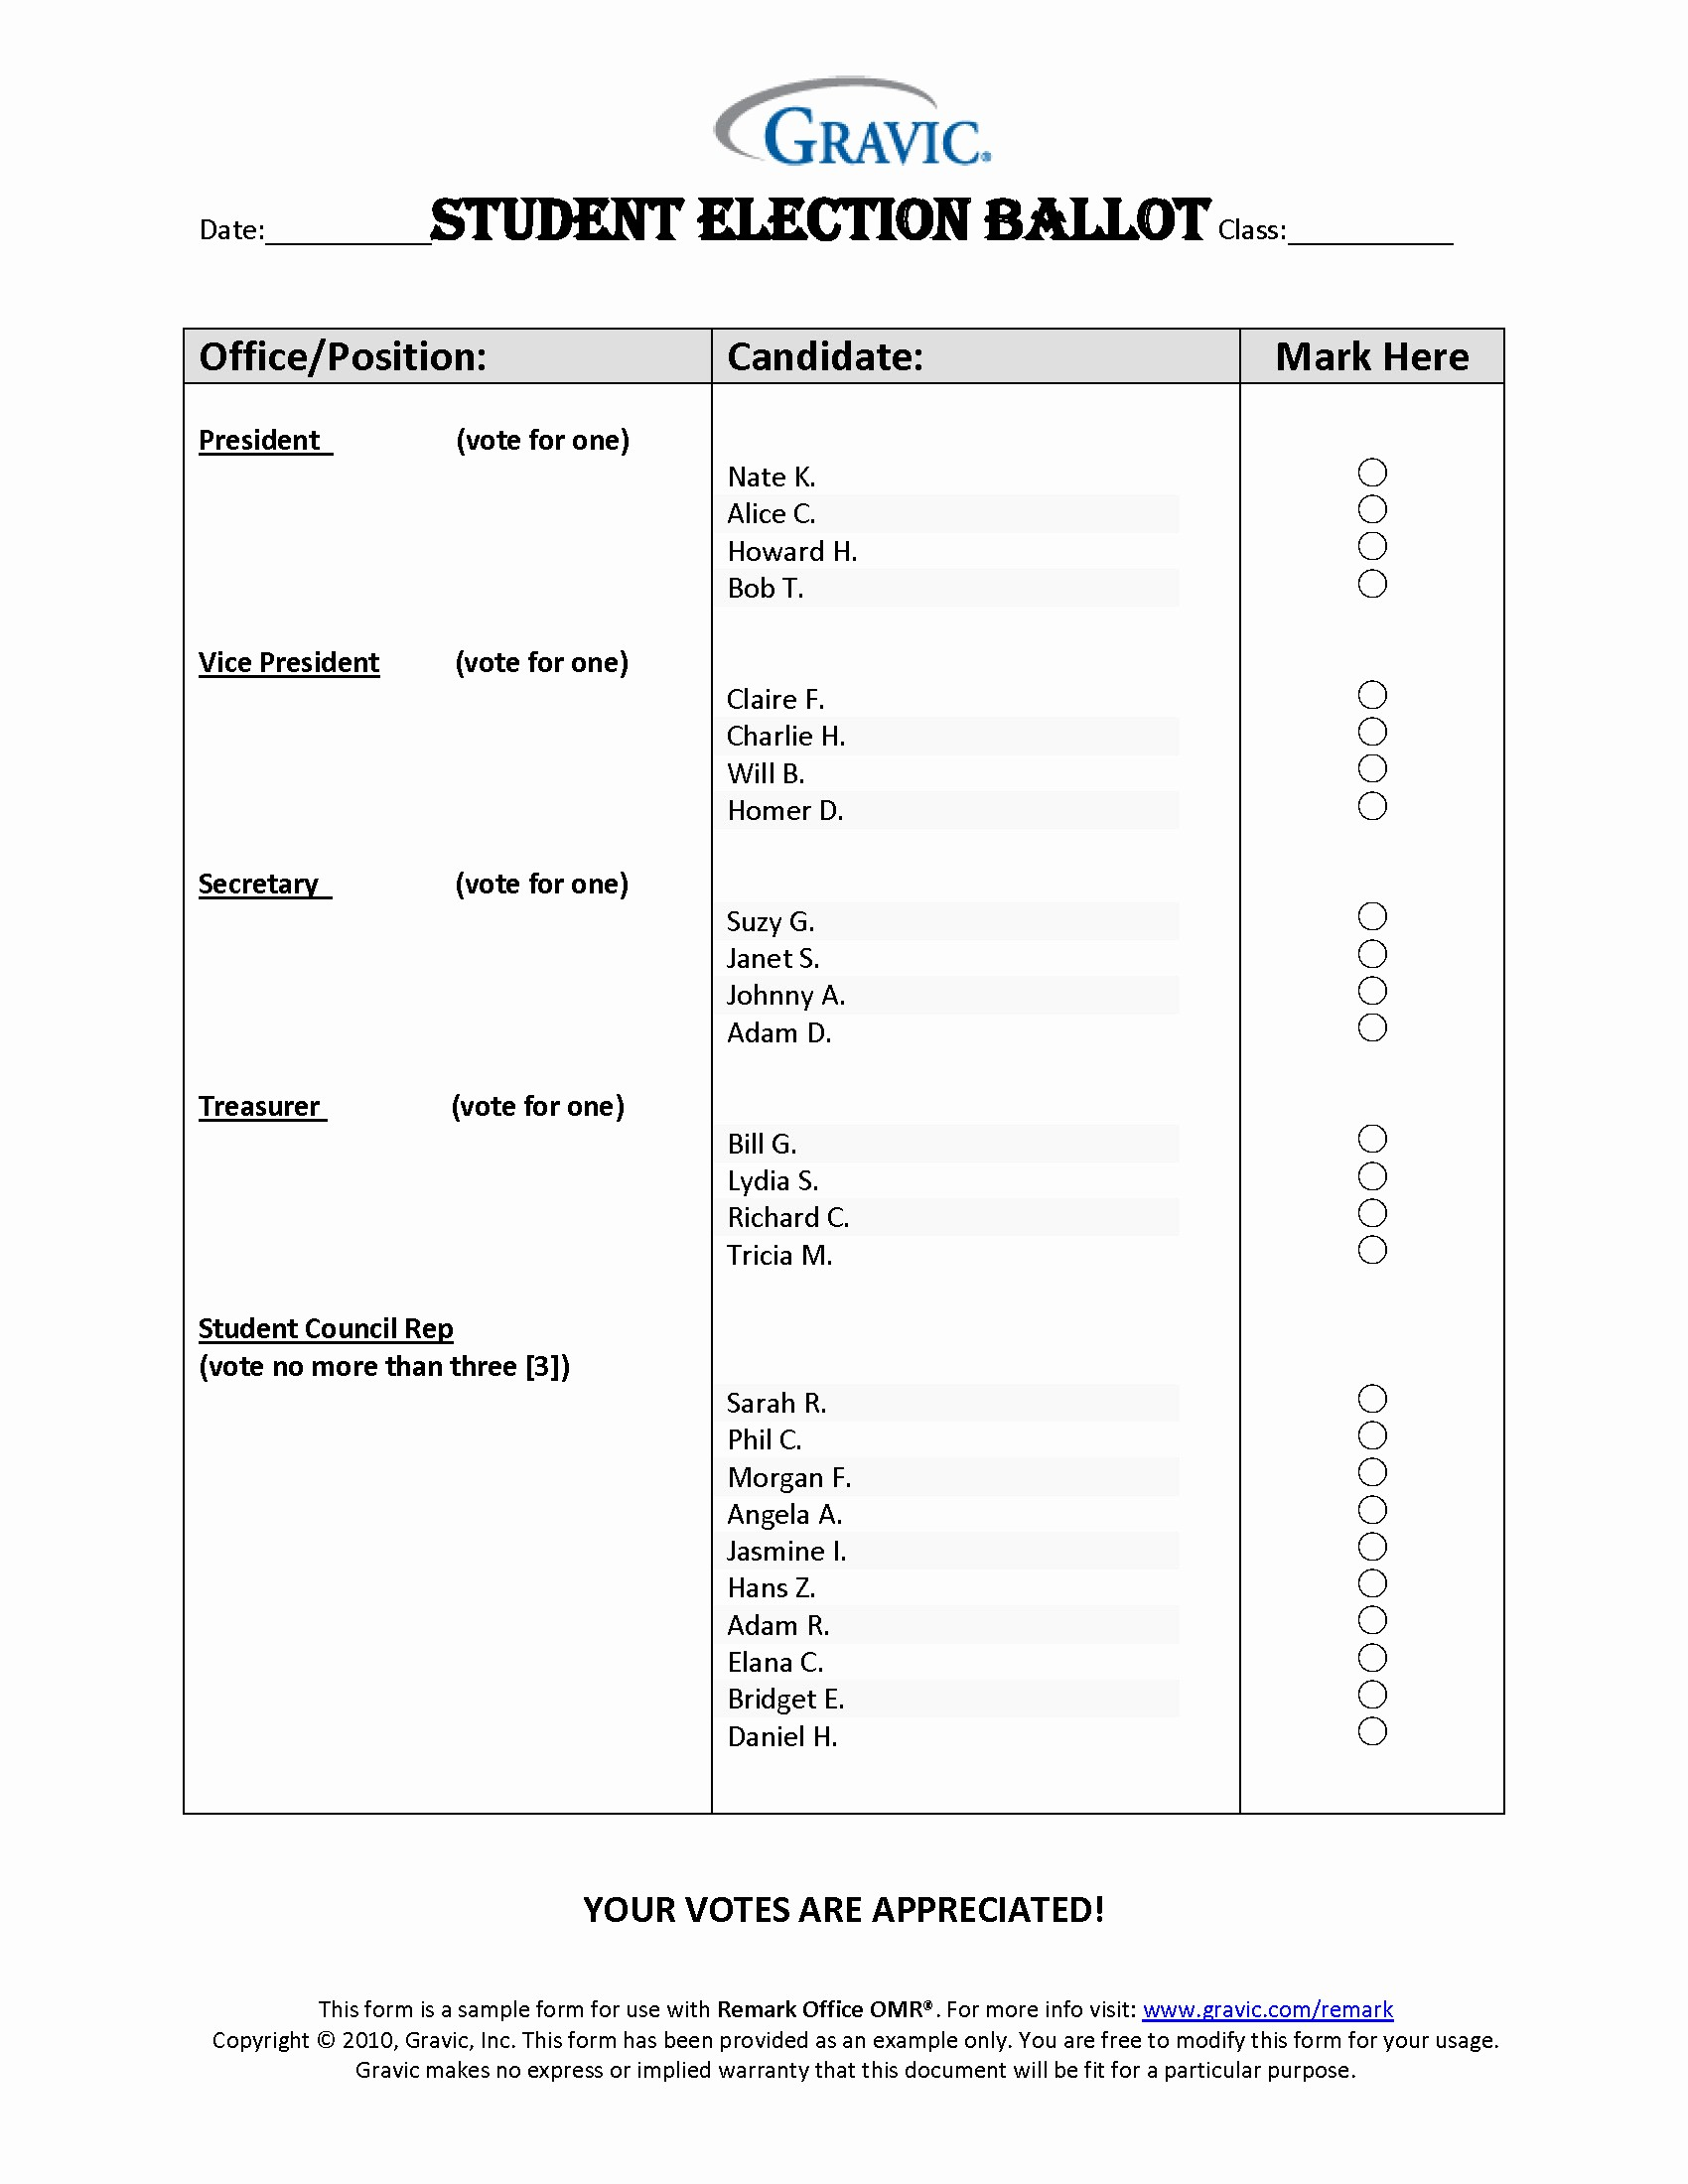 Student Council Certificate Template Free Awesome Student Election Ballot · Remark software